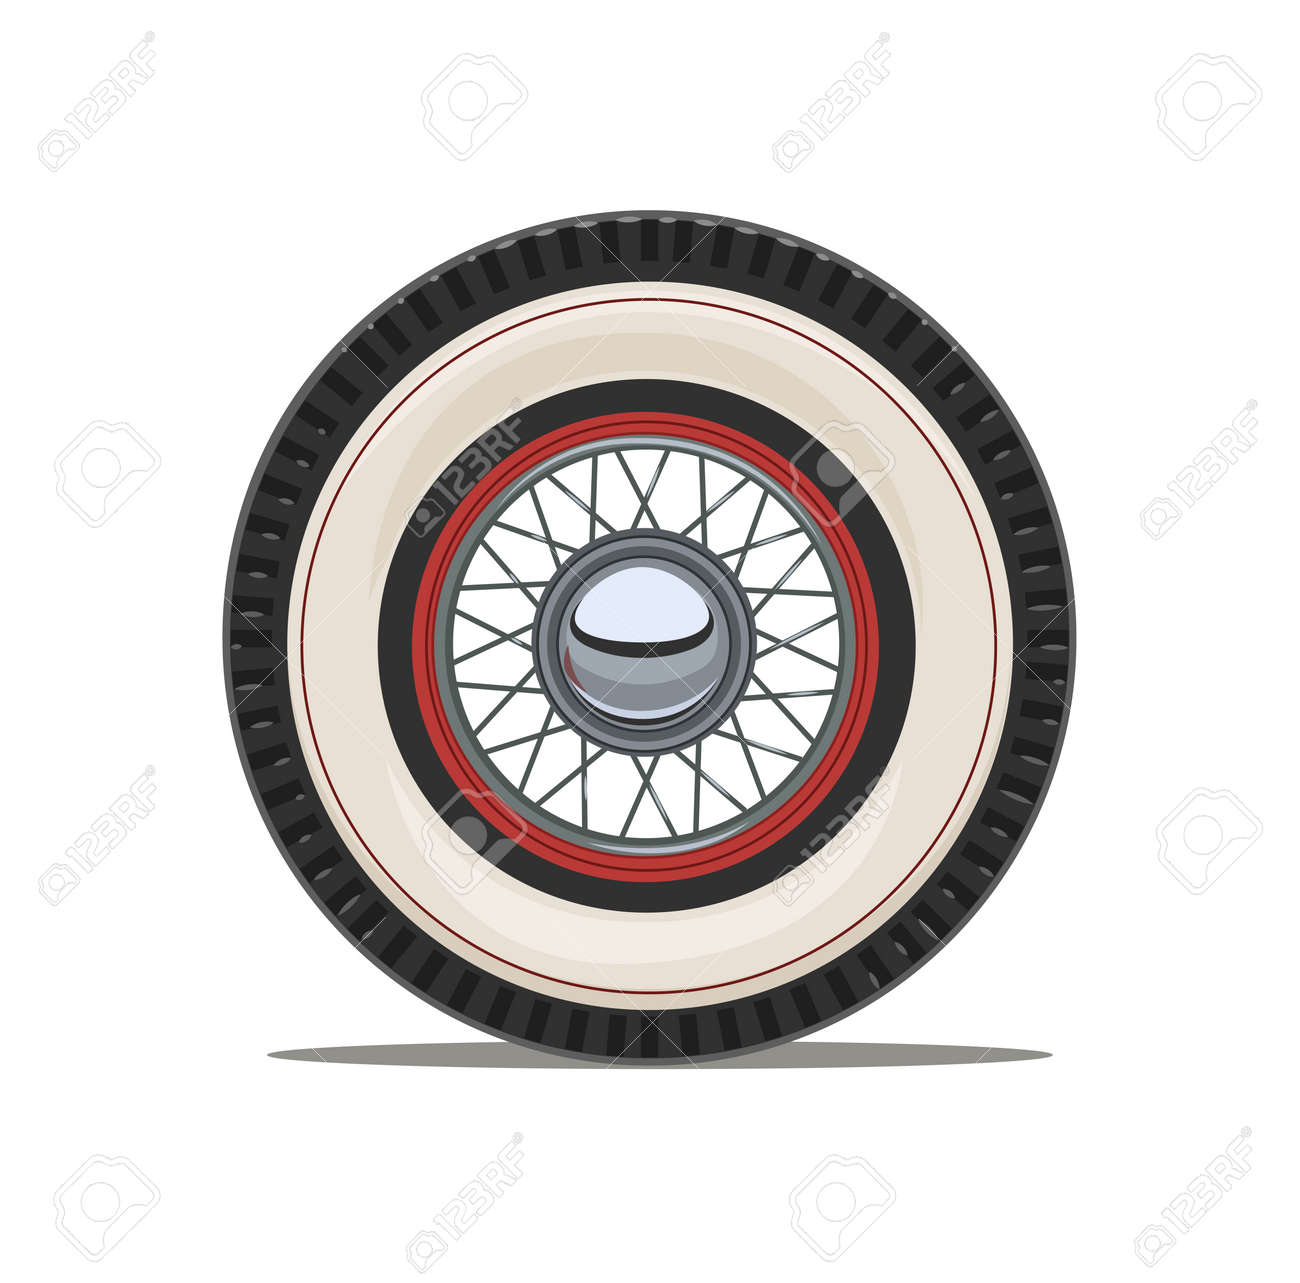 Vintage Car Wheel With Spoke, Isolated White Background. Eps10 ...